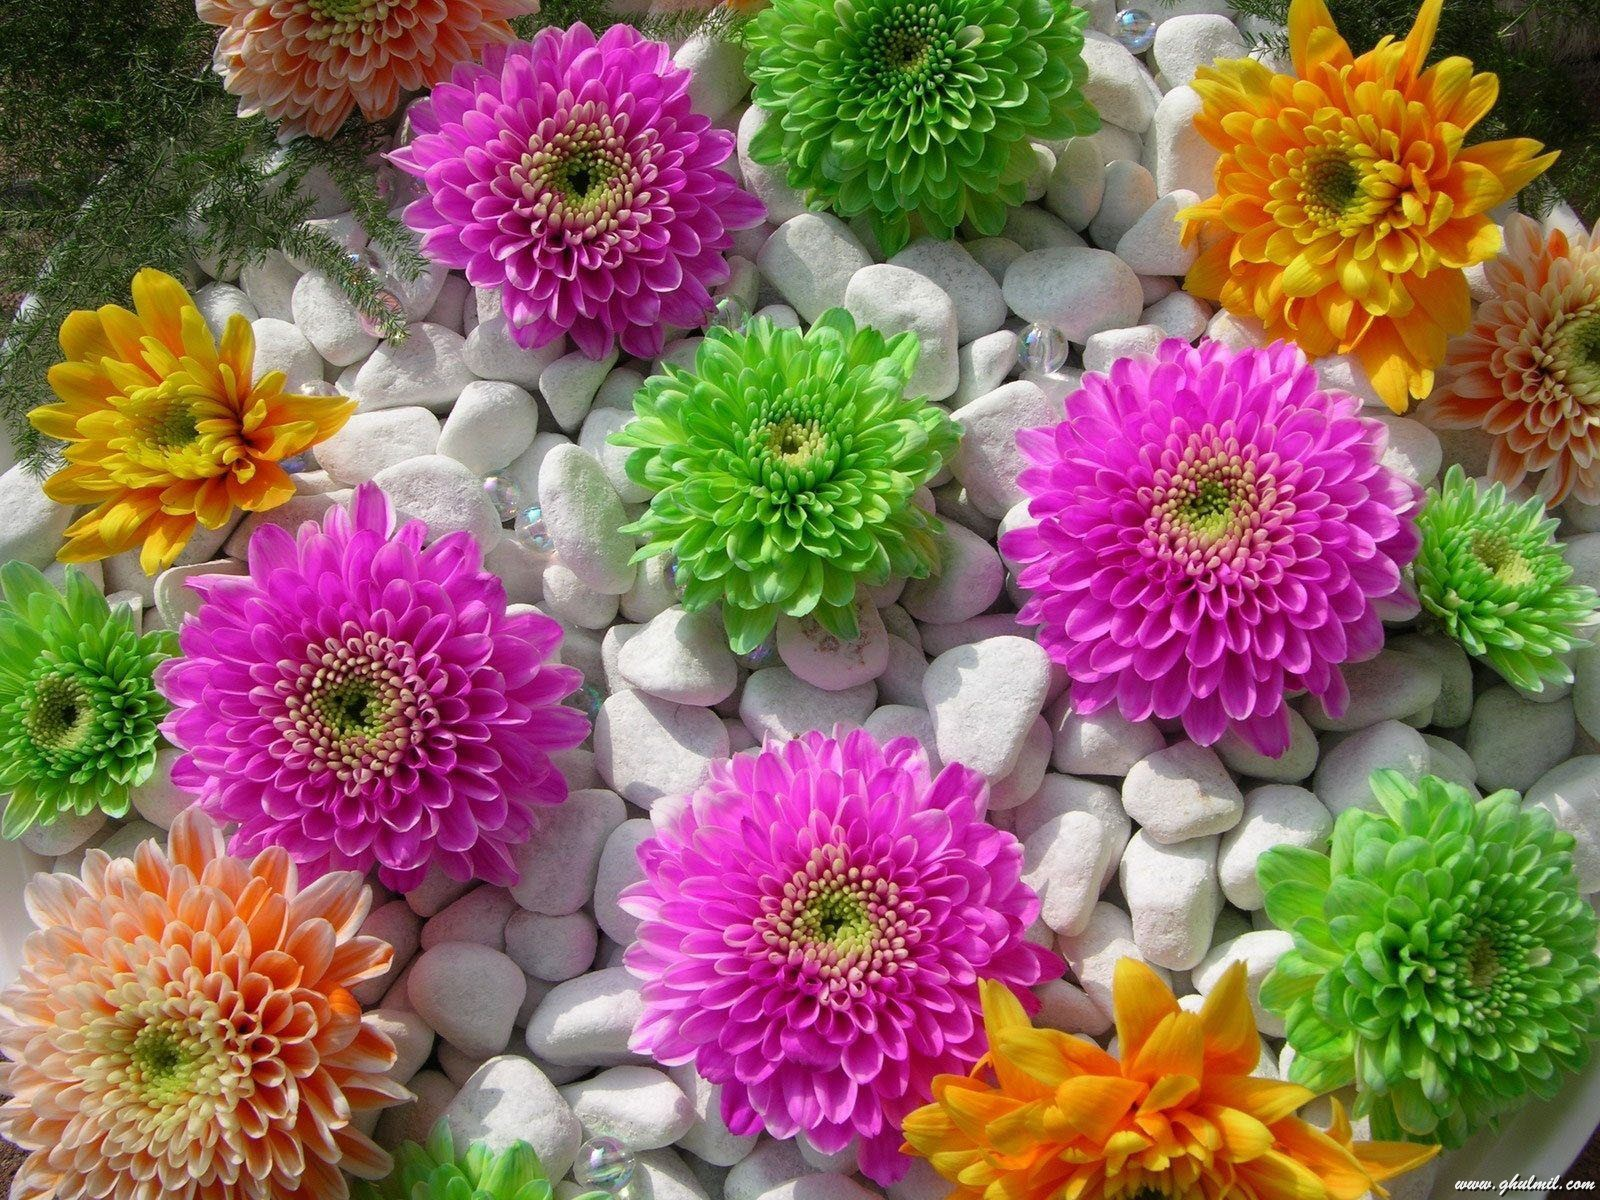 Beautiful Flowers Wallpapers  Android Apps on Google Play 1600x1200